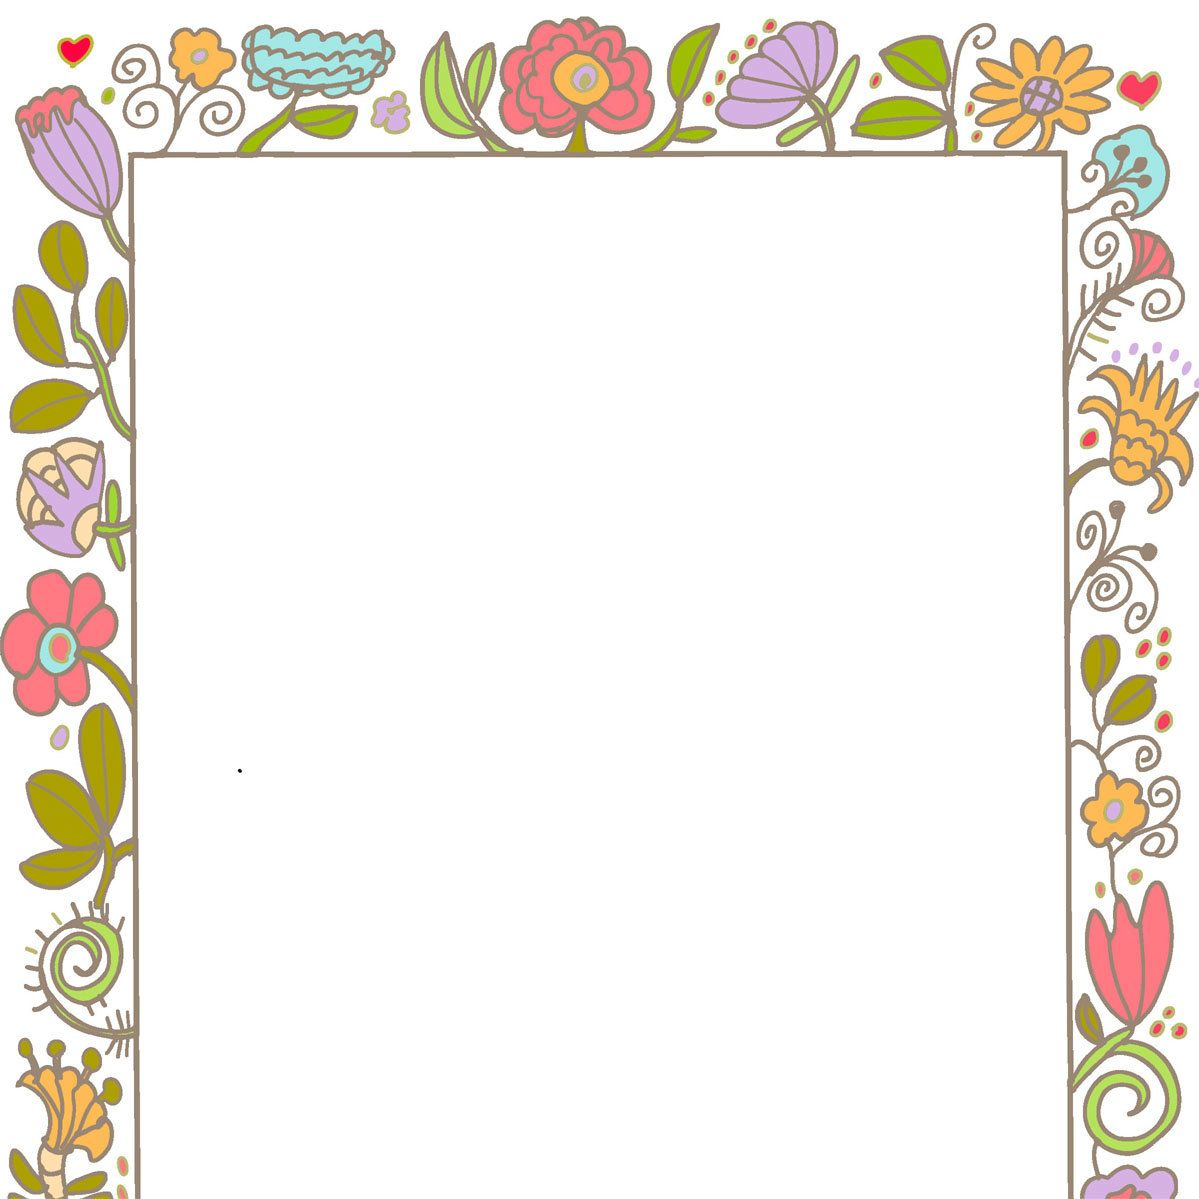 Clip Art Cute Borders And Frames Siteframes